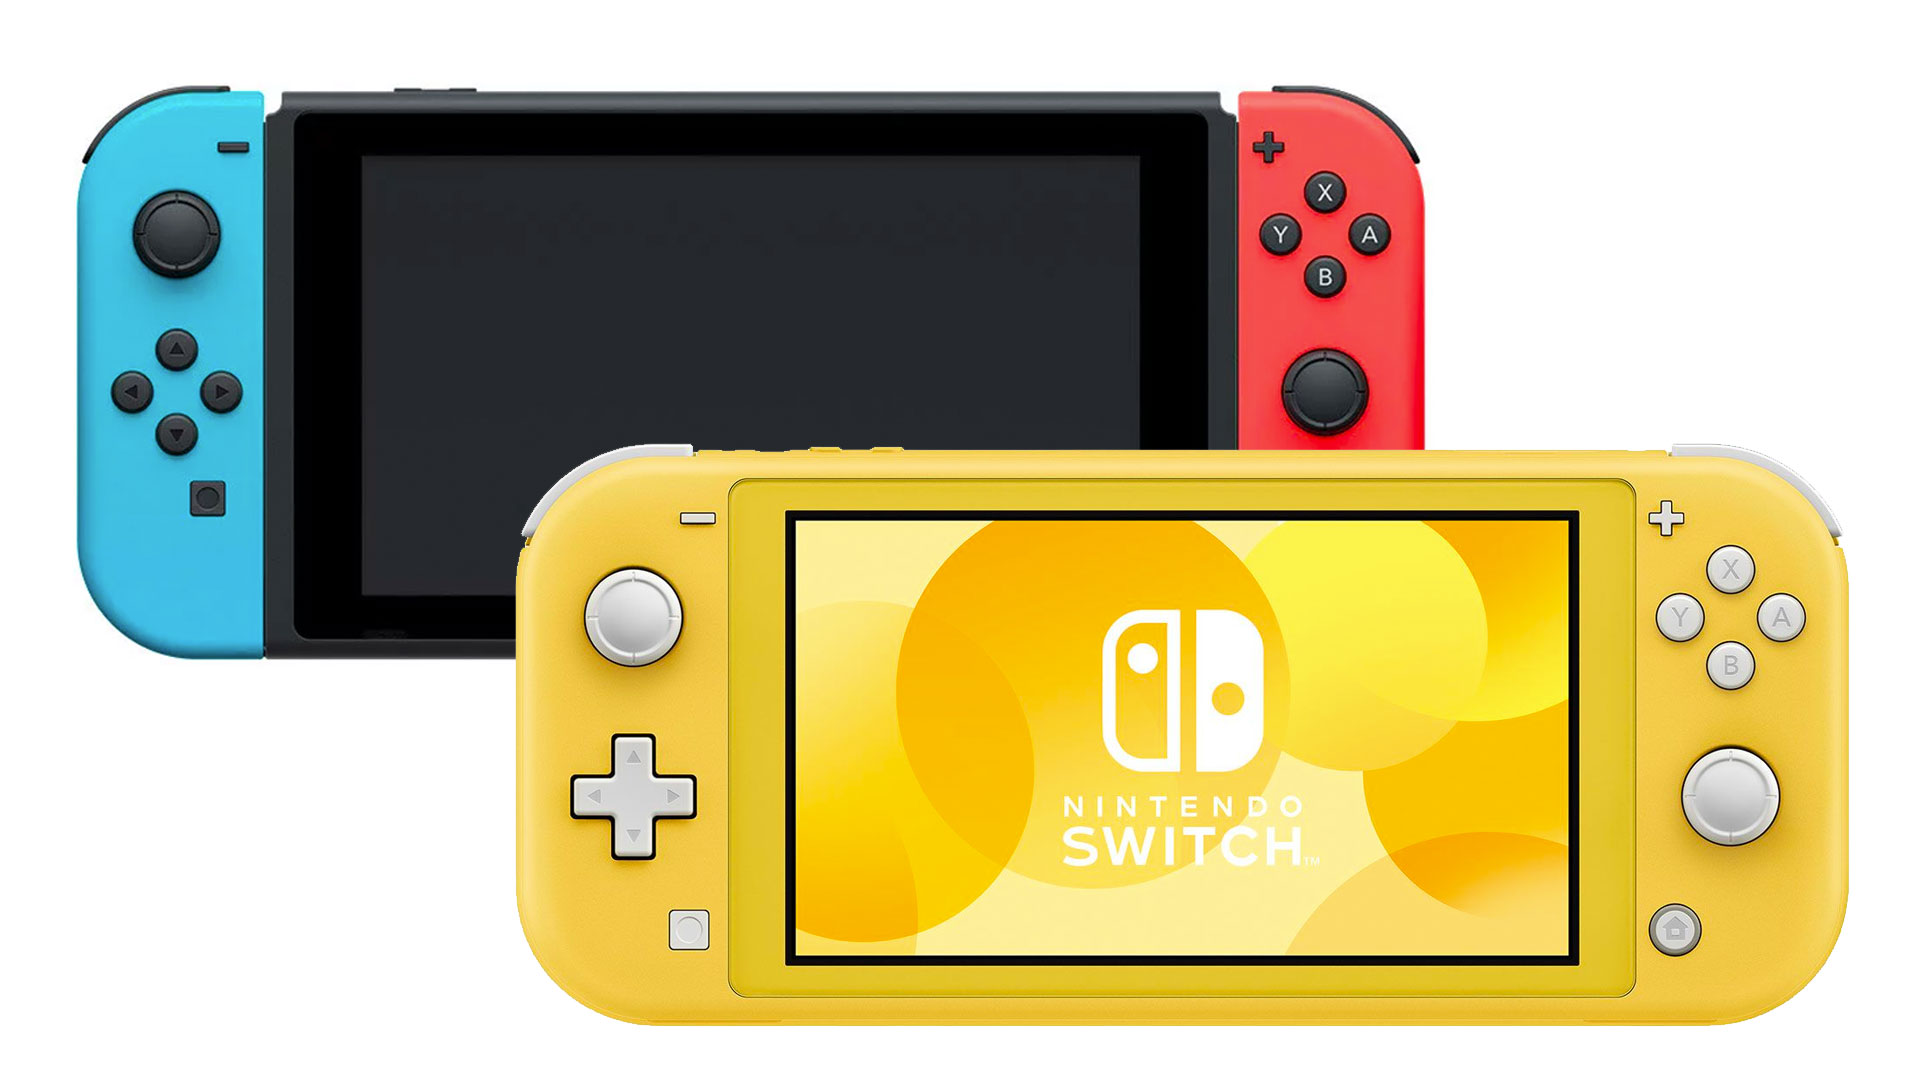 Special Edition Switch